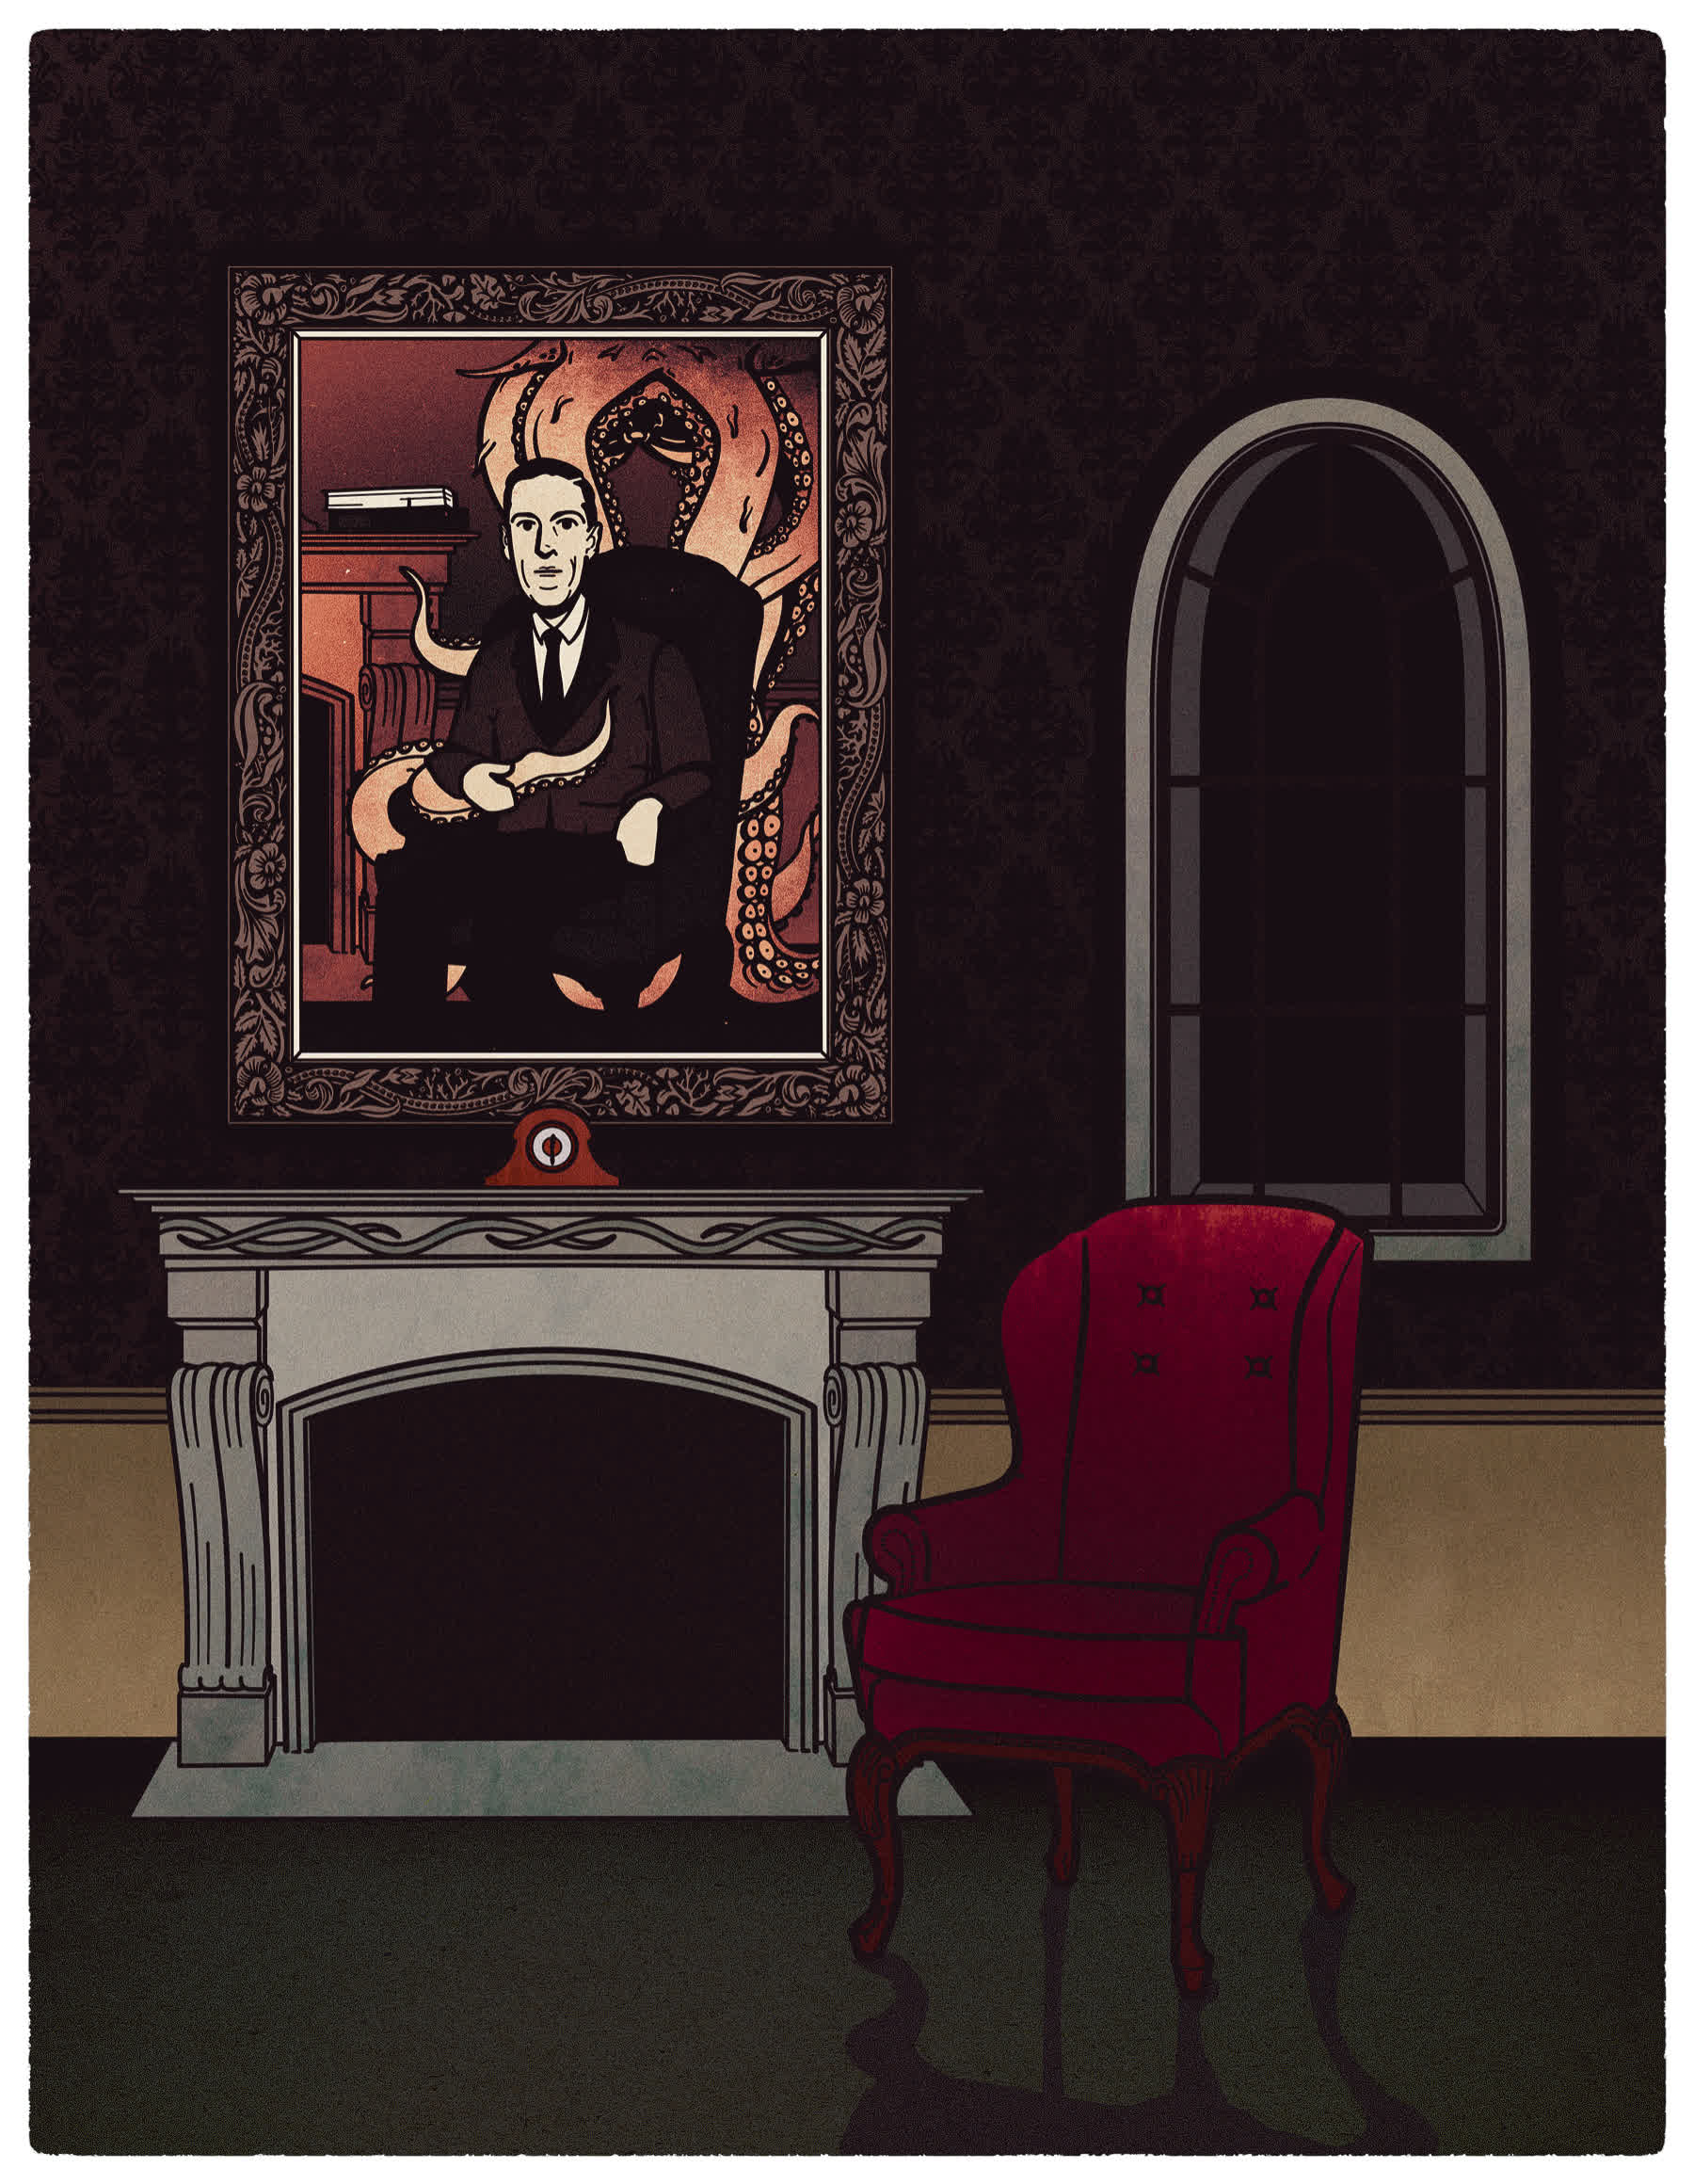 cthulhu, fiction, horror, hplovecraft, illustration, lovecraft, nocter, selin arisoy, lovecraft GIFs